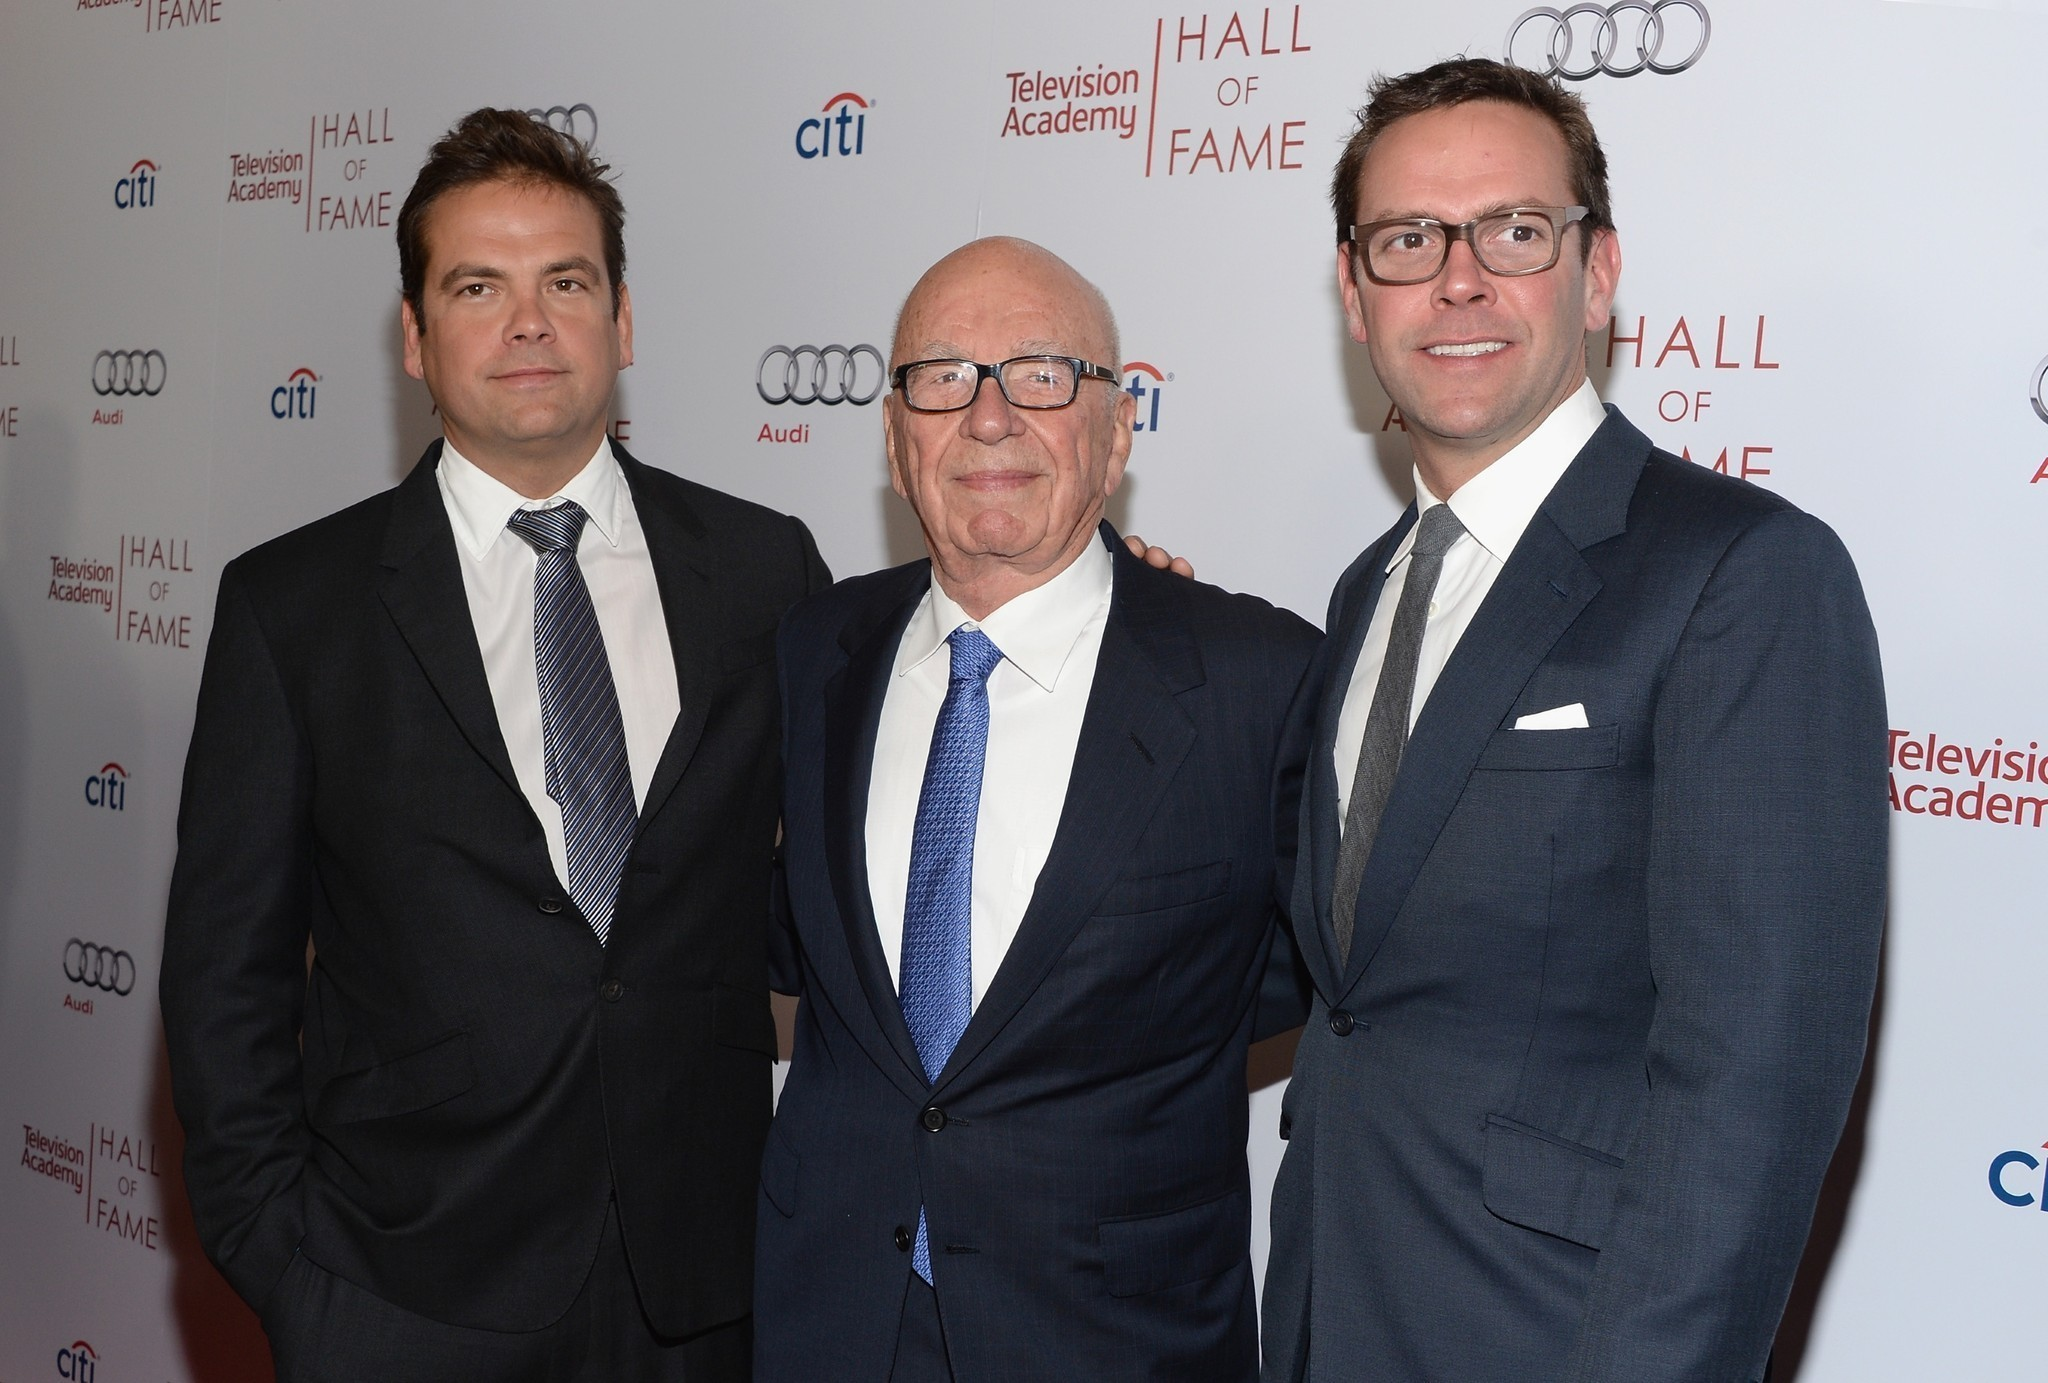 Back in the Fox fold: Lachlan Murdoch, left, rejoins father Rupert and brother James.